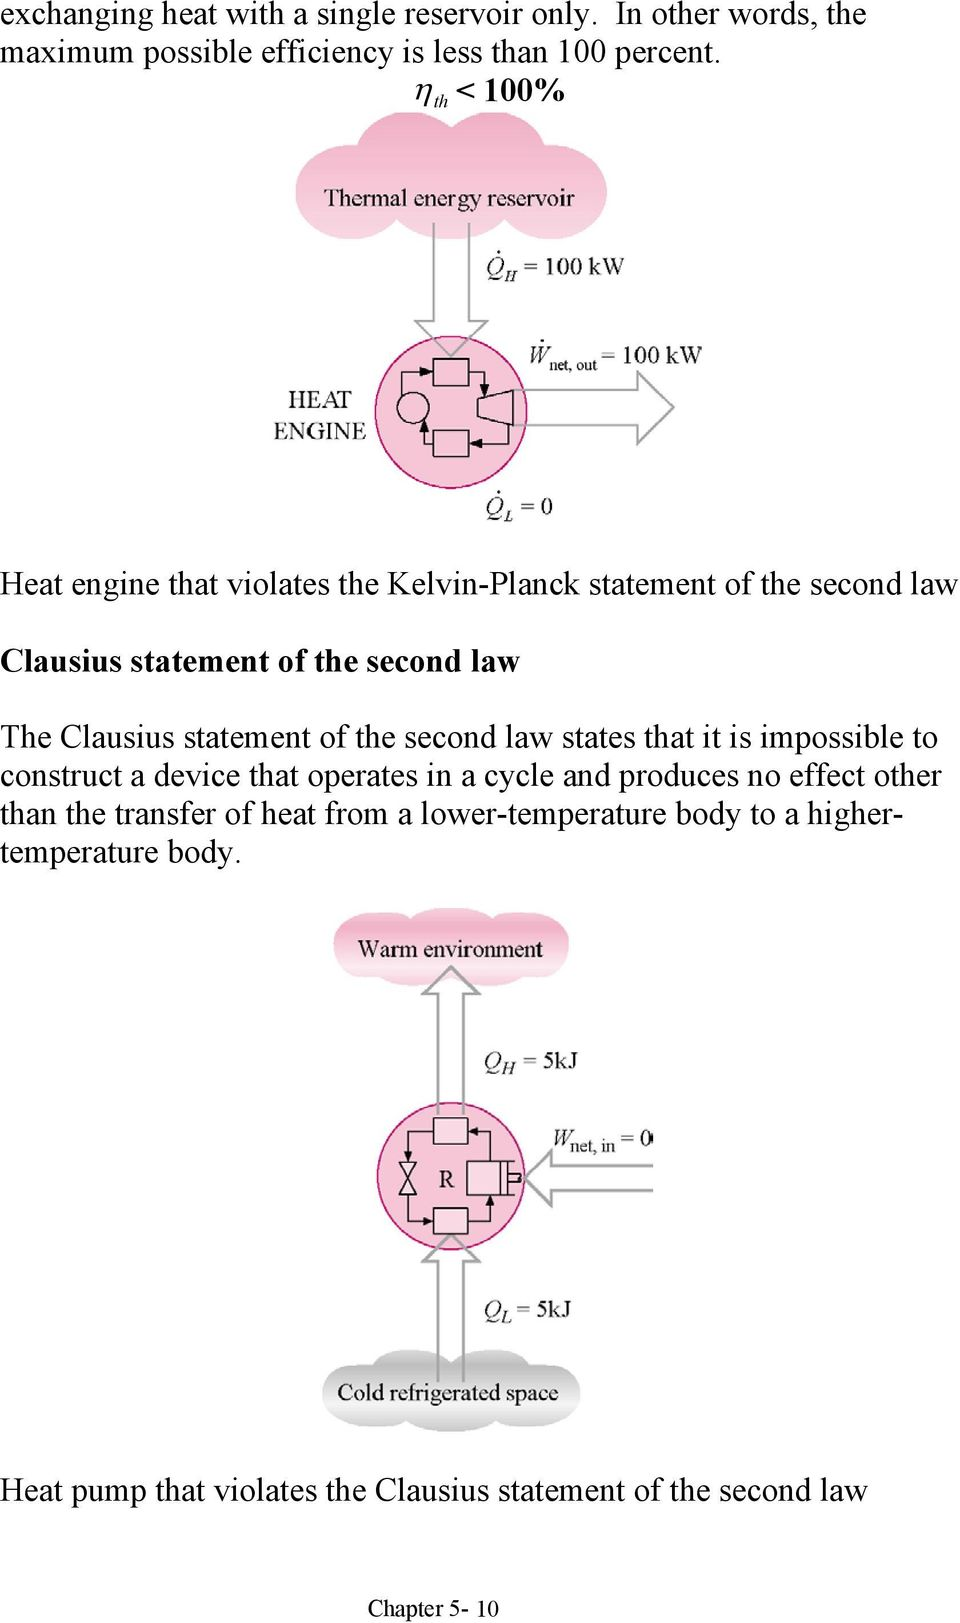 statement of the second law states that it is impossible to construct a device that operates in a cycle and produces no effect other